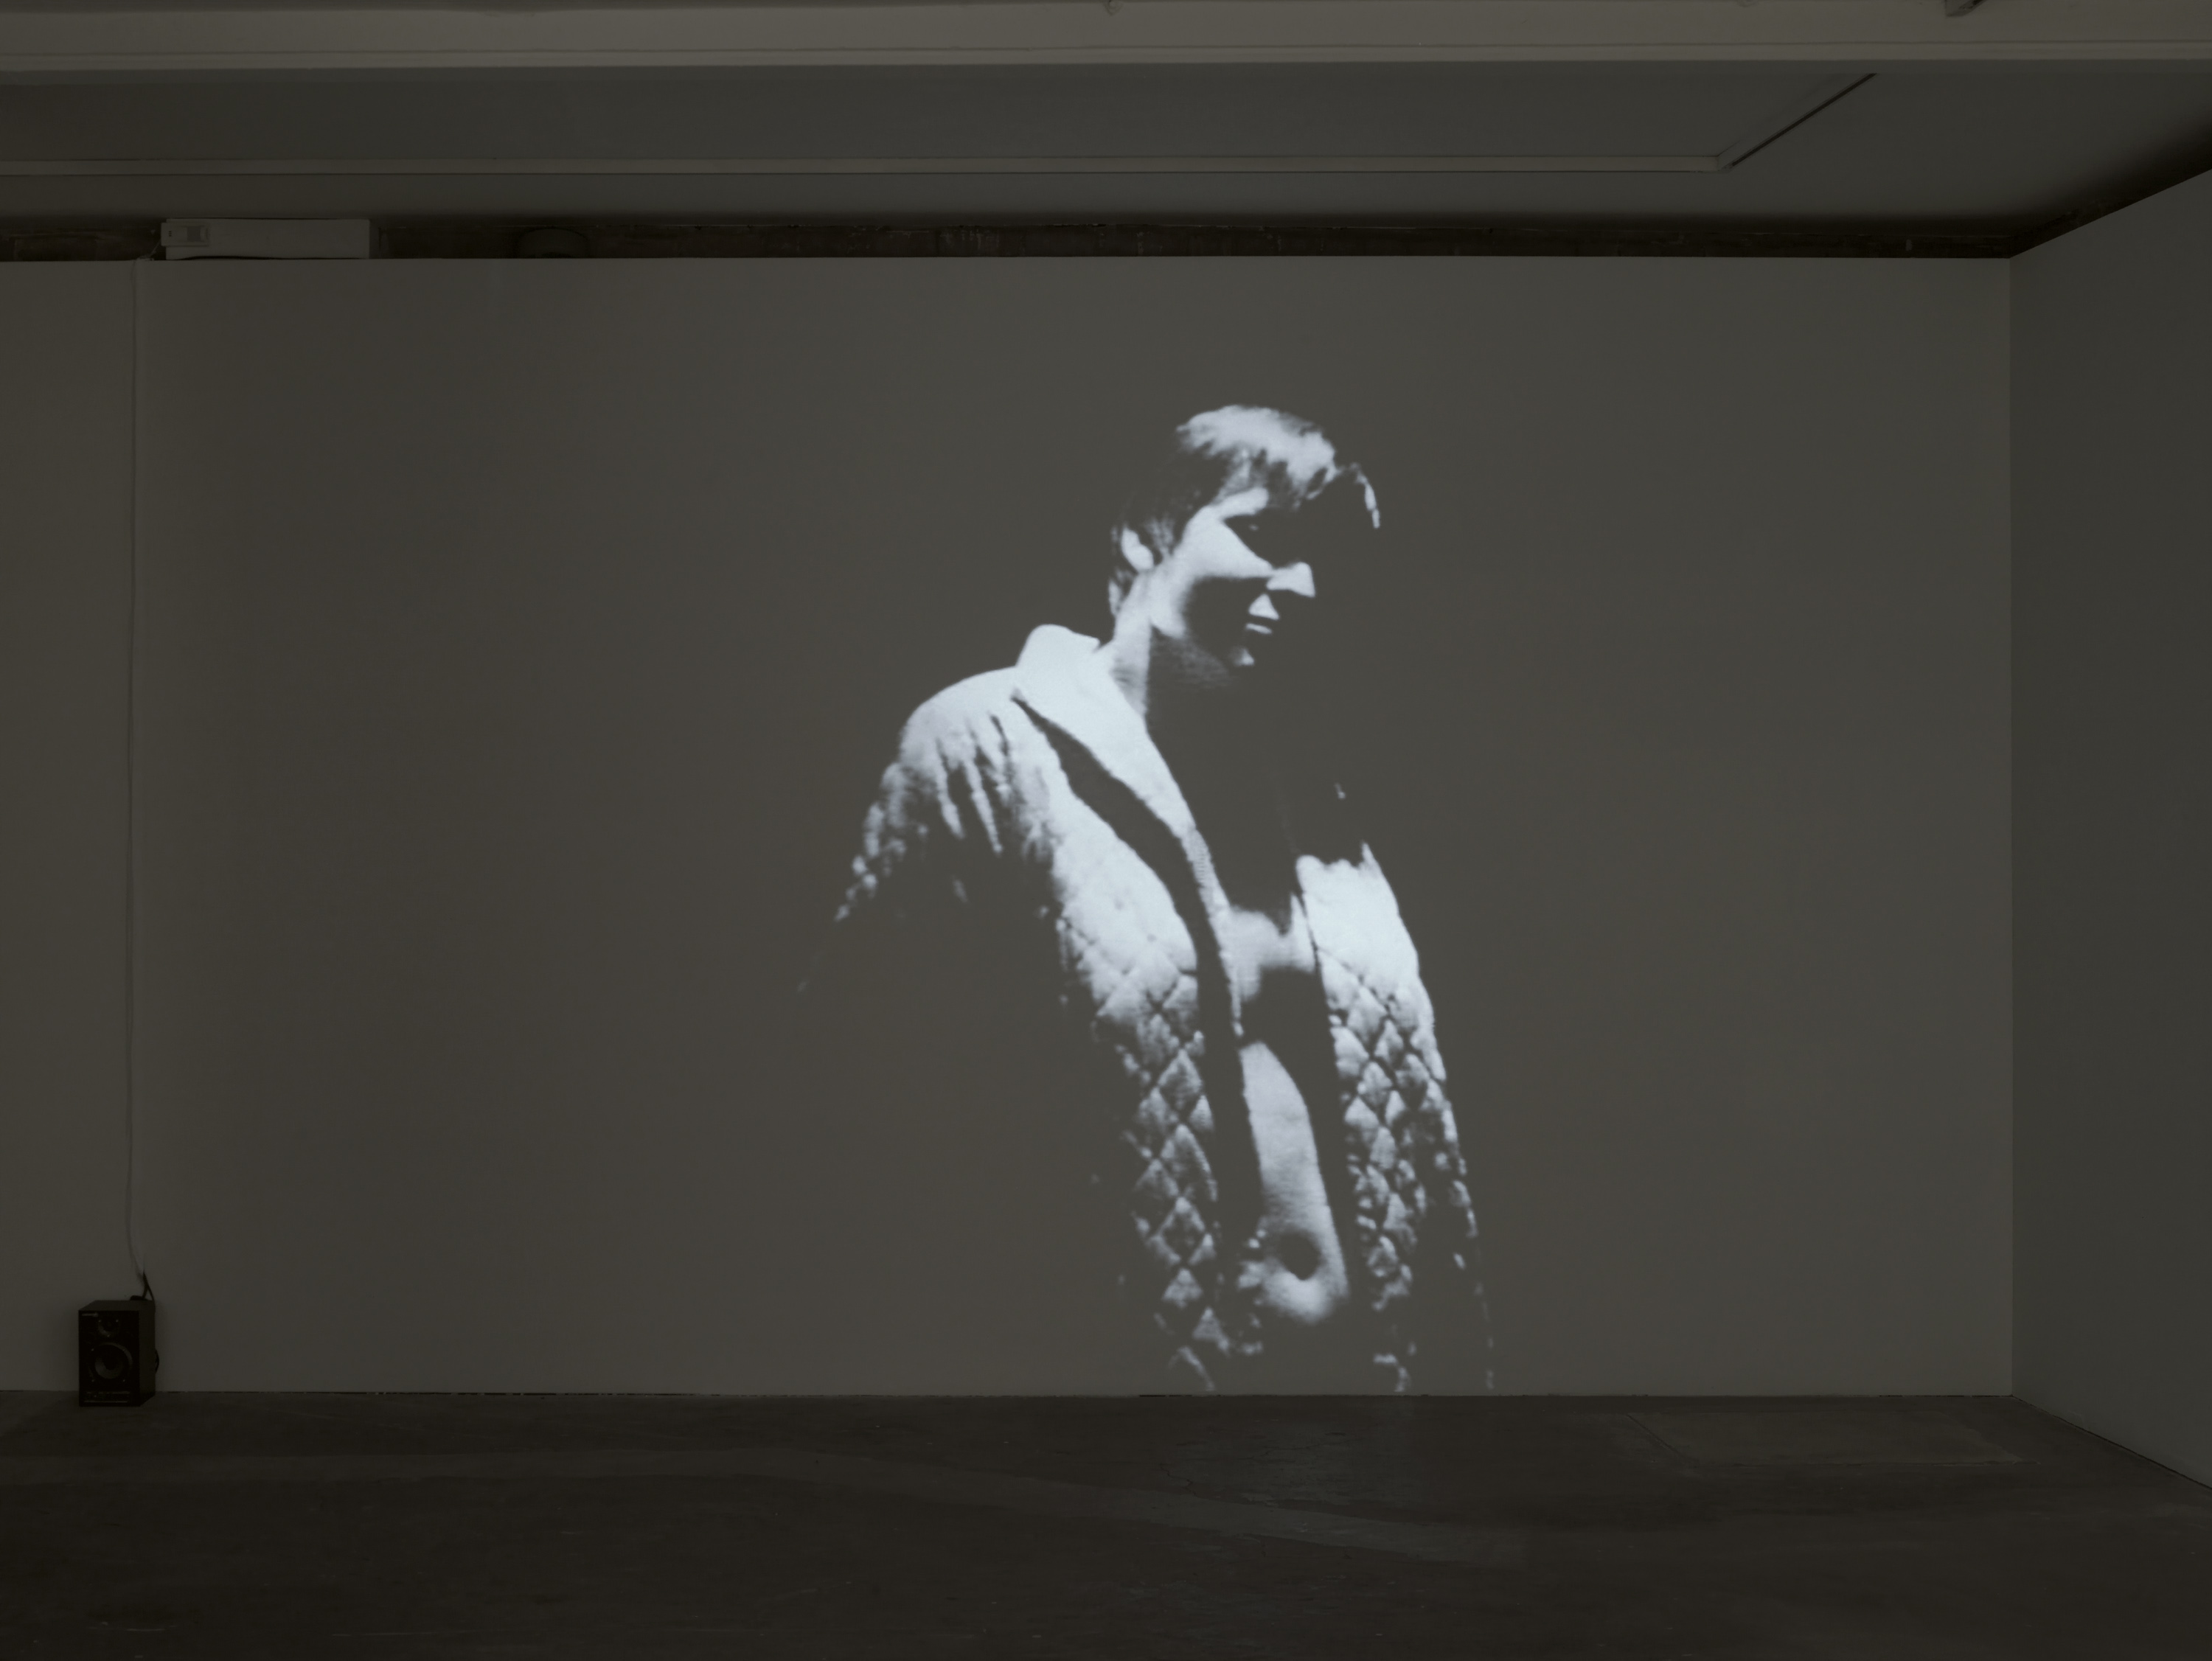 Take me, 1969, Black & White 16mm film transferred to dvd, 28mins, installation view. Stephen Dwoskin